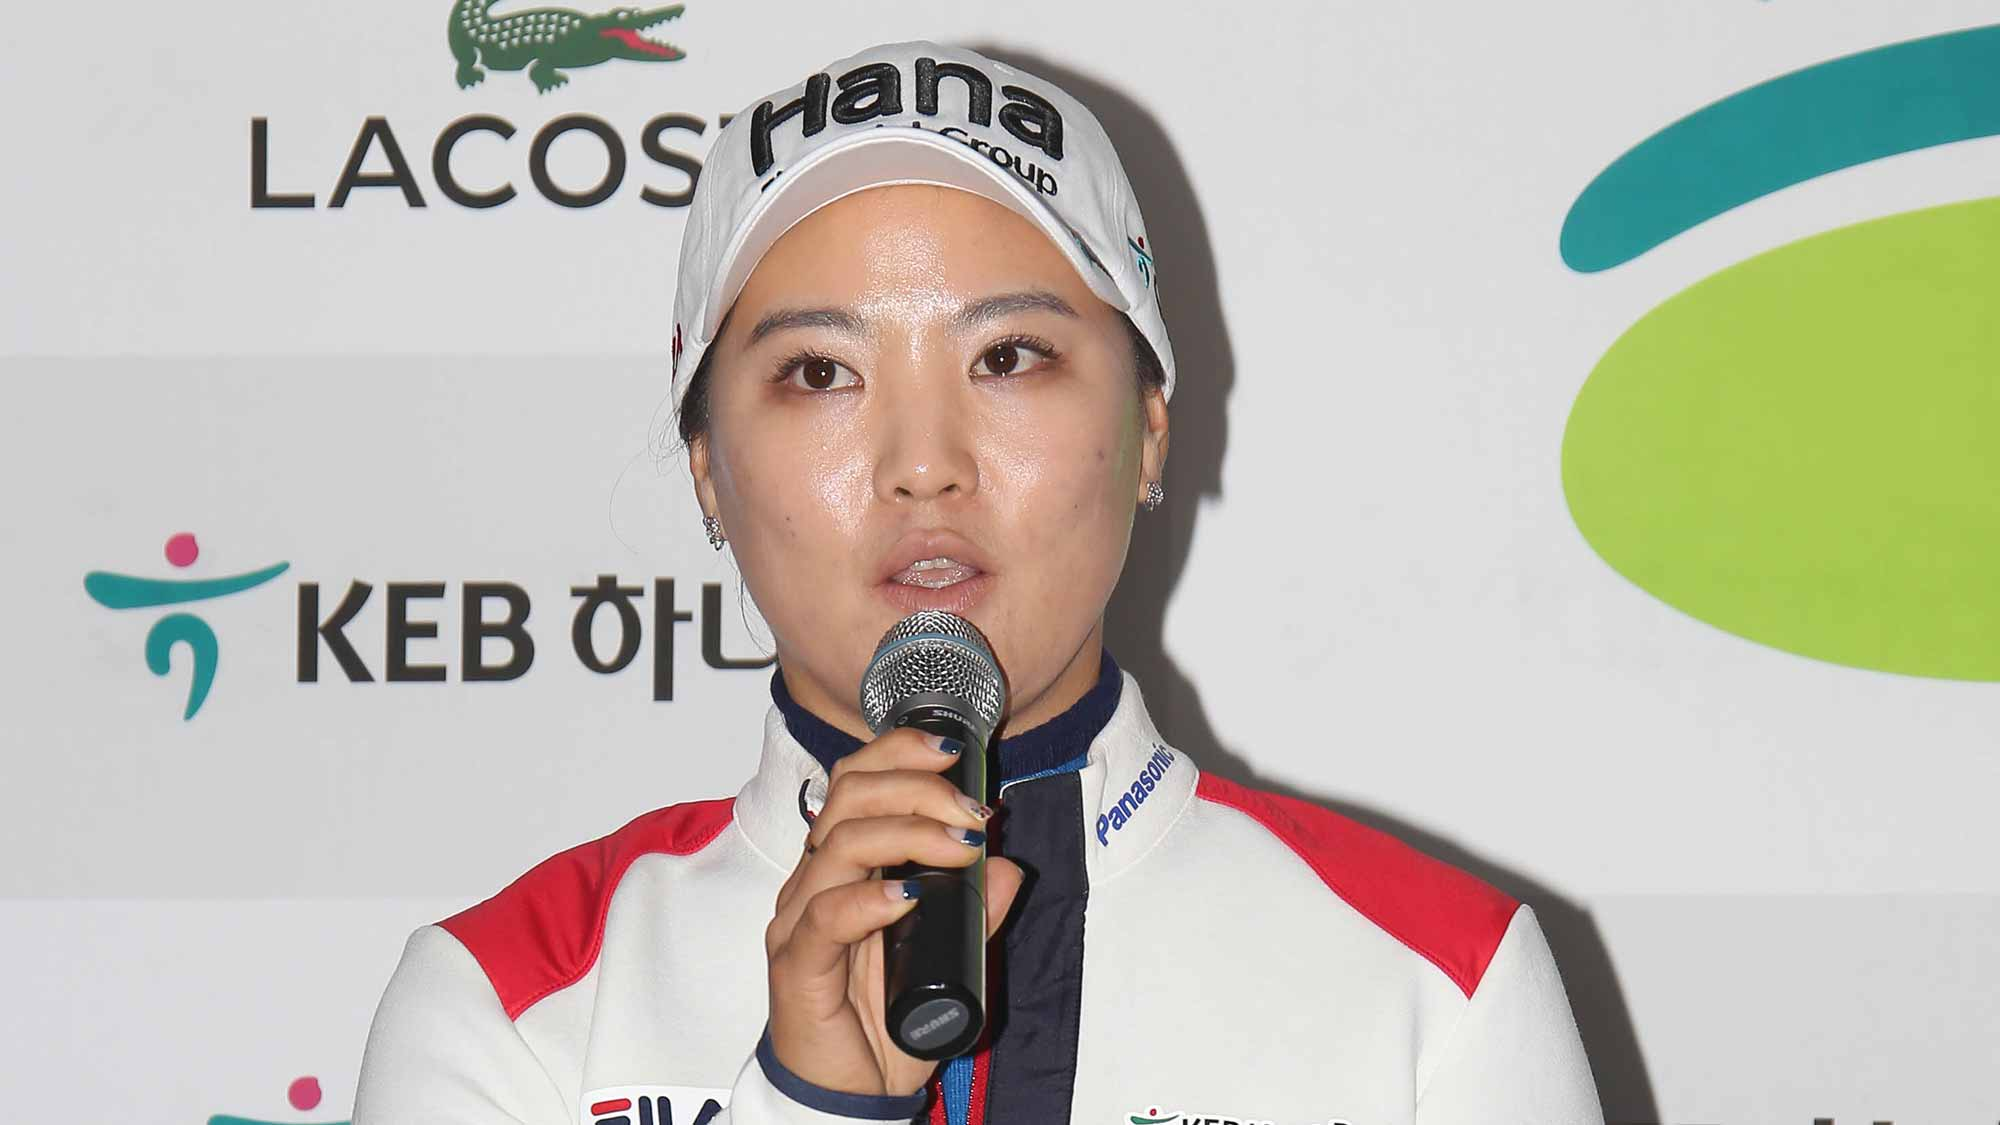 So Yeon Ryu Addresses The Media During A Pre-Tournament Press Conference at LPGA KEB Hana Bank Championship